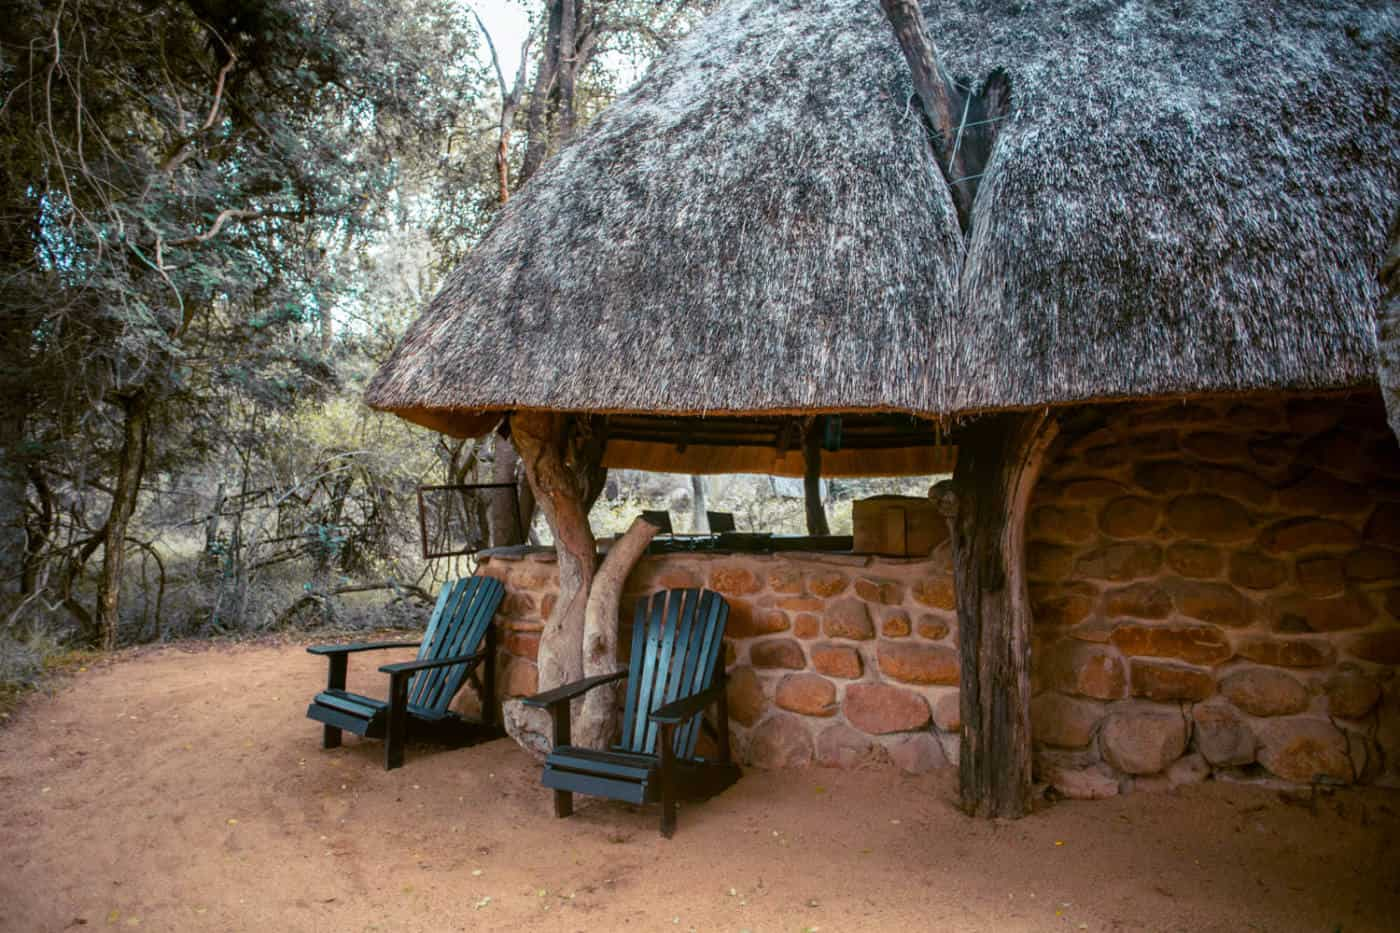 Swaziland safari Mkhaya camp